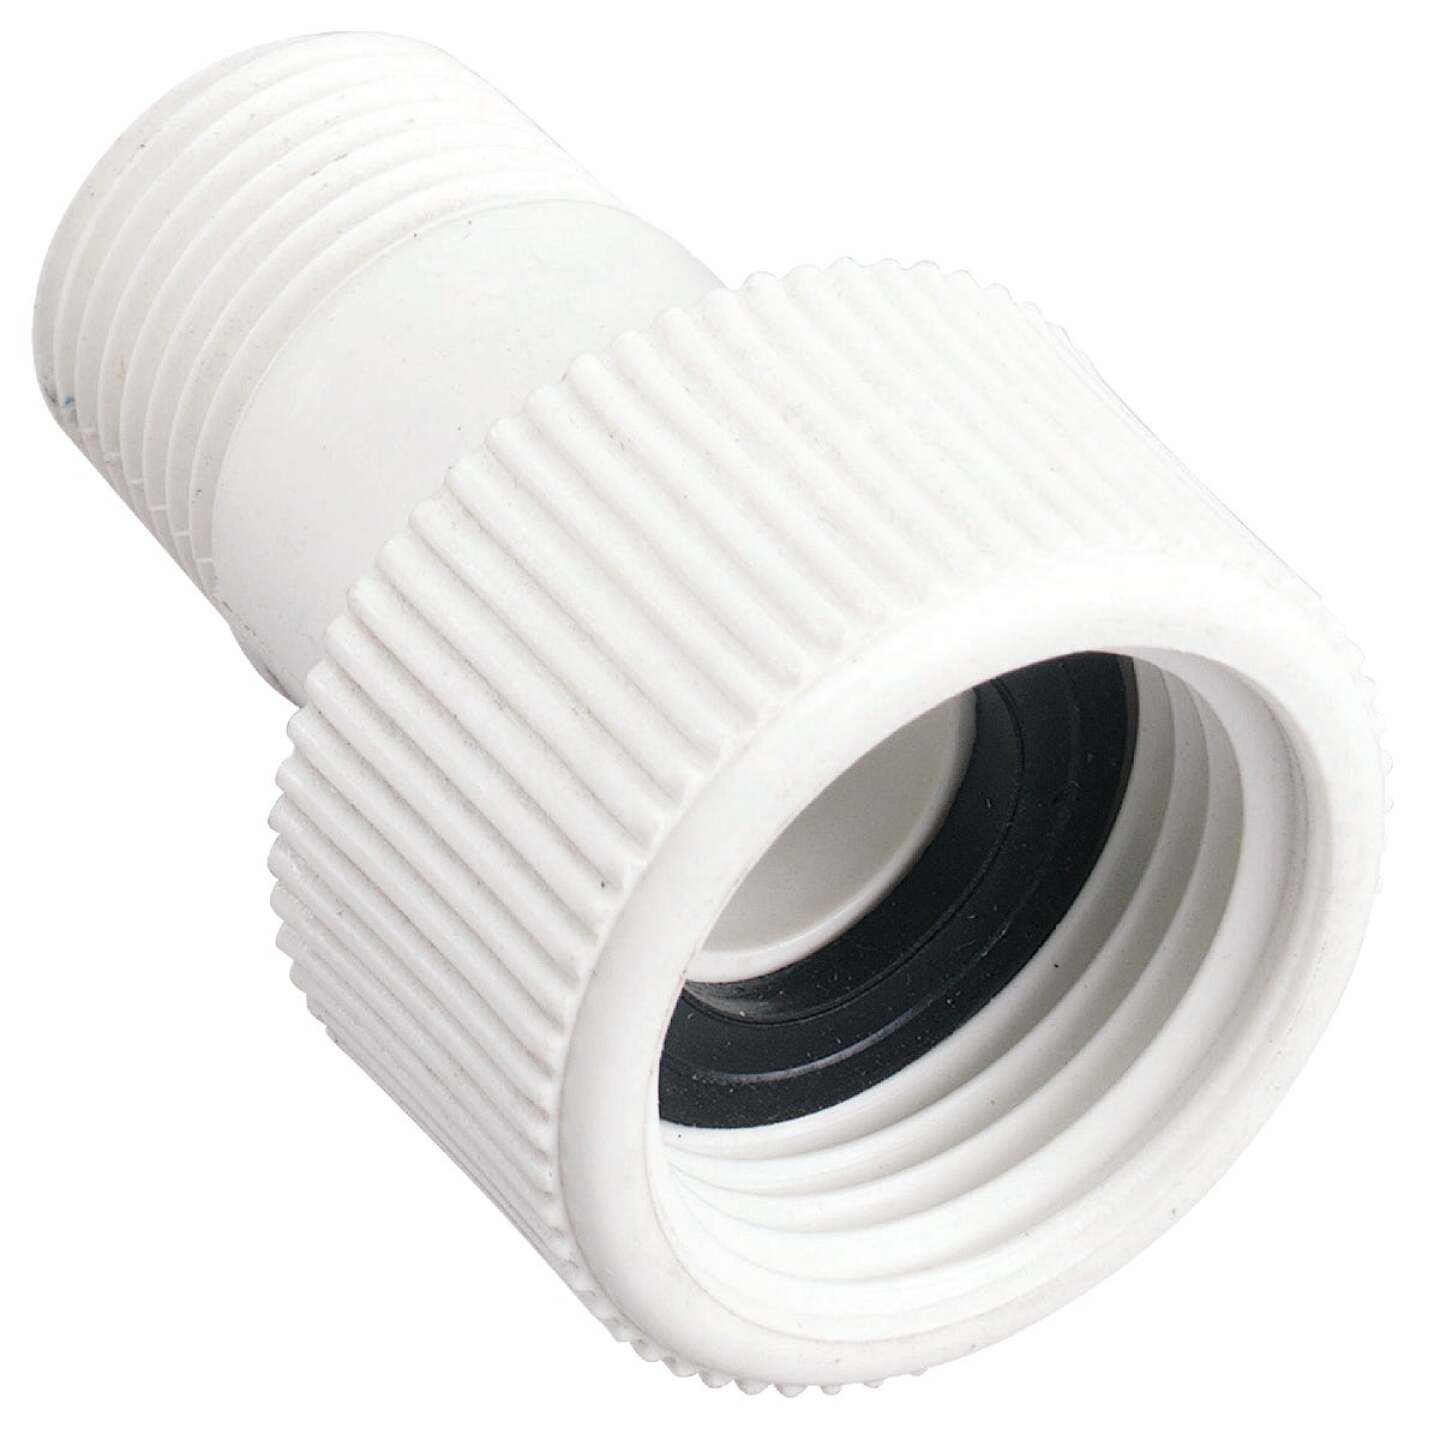 Orbit 1/2 In. MPT x 3/4 In. FHT PVC Hose Adapter Image 1